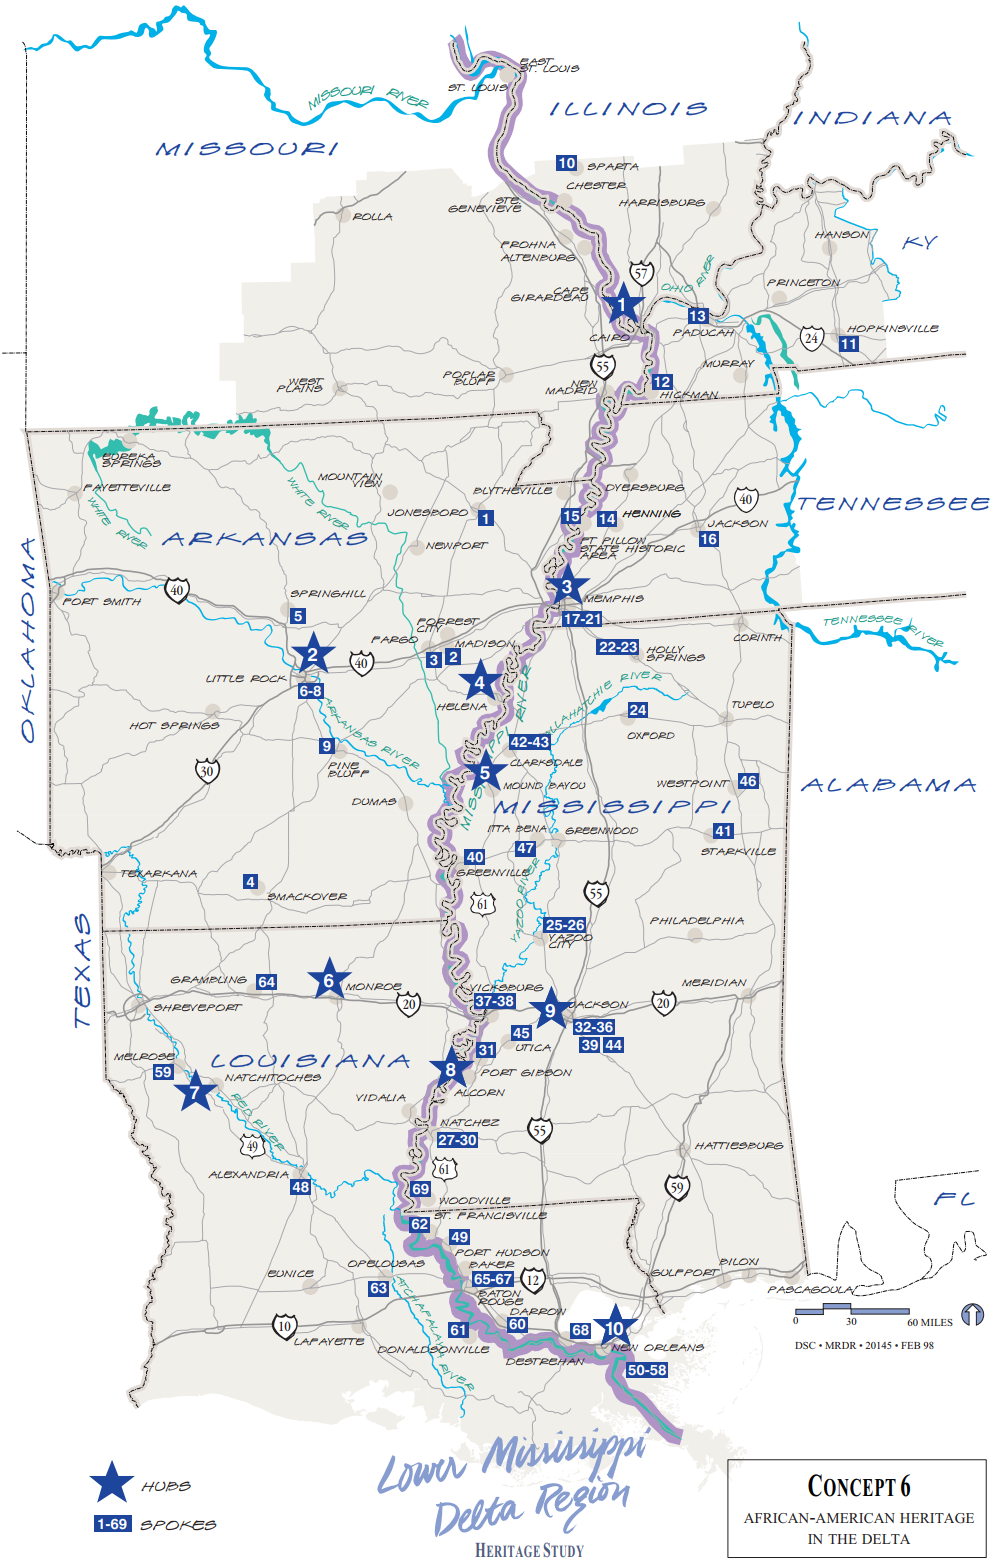 Map of African-American Heritage Sites in the Lower Mississippi Delta Region